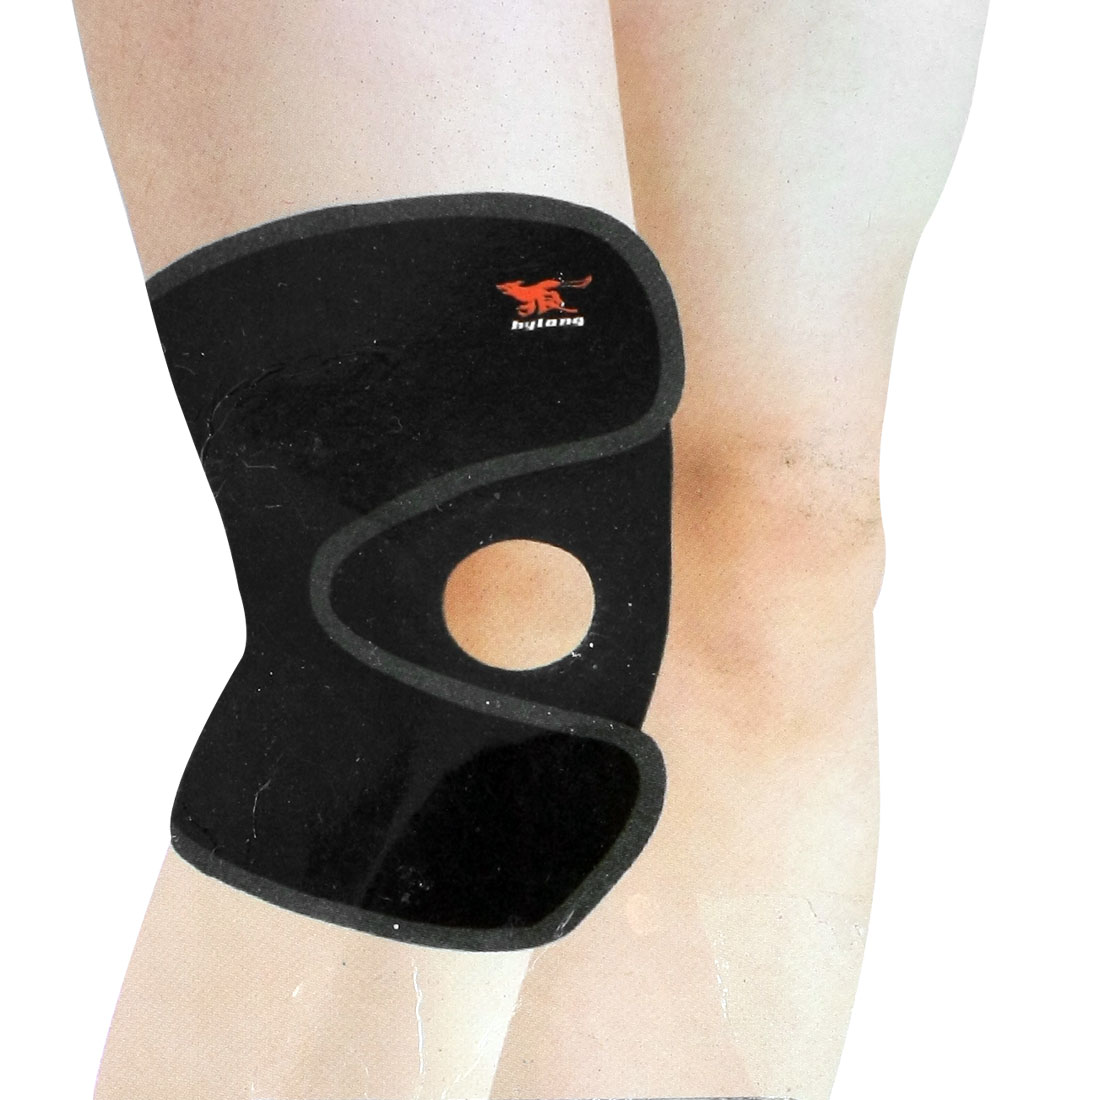 Detachable Fastener Rubber Stretchy Knee Support Brace Black